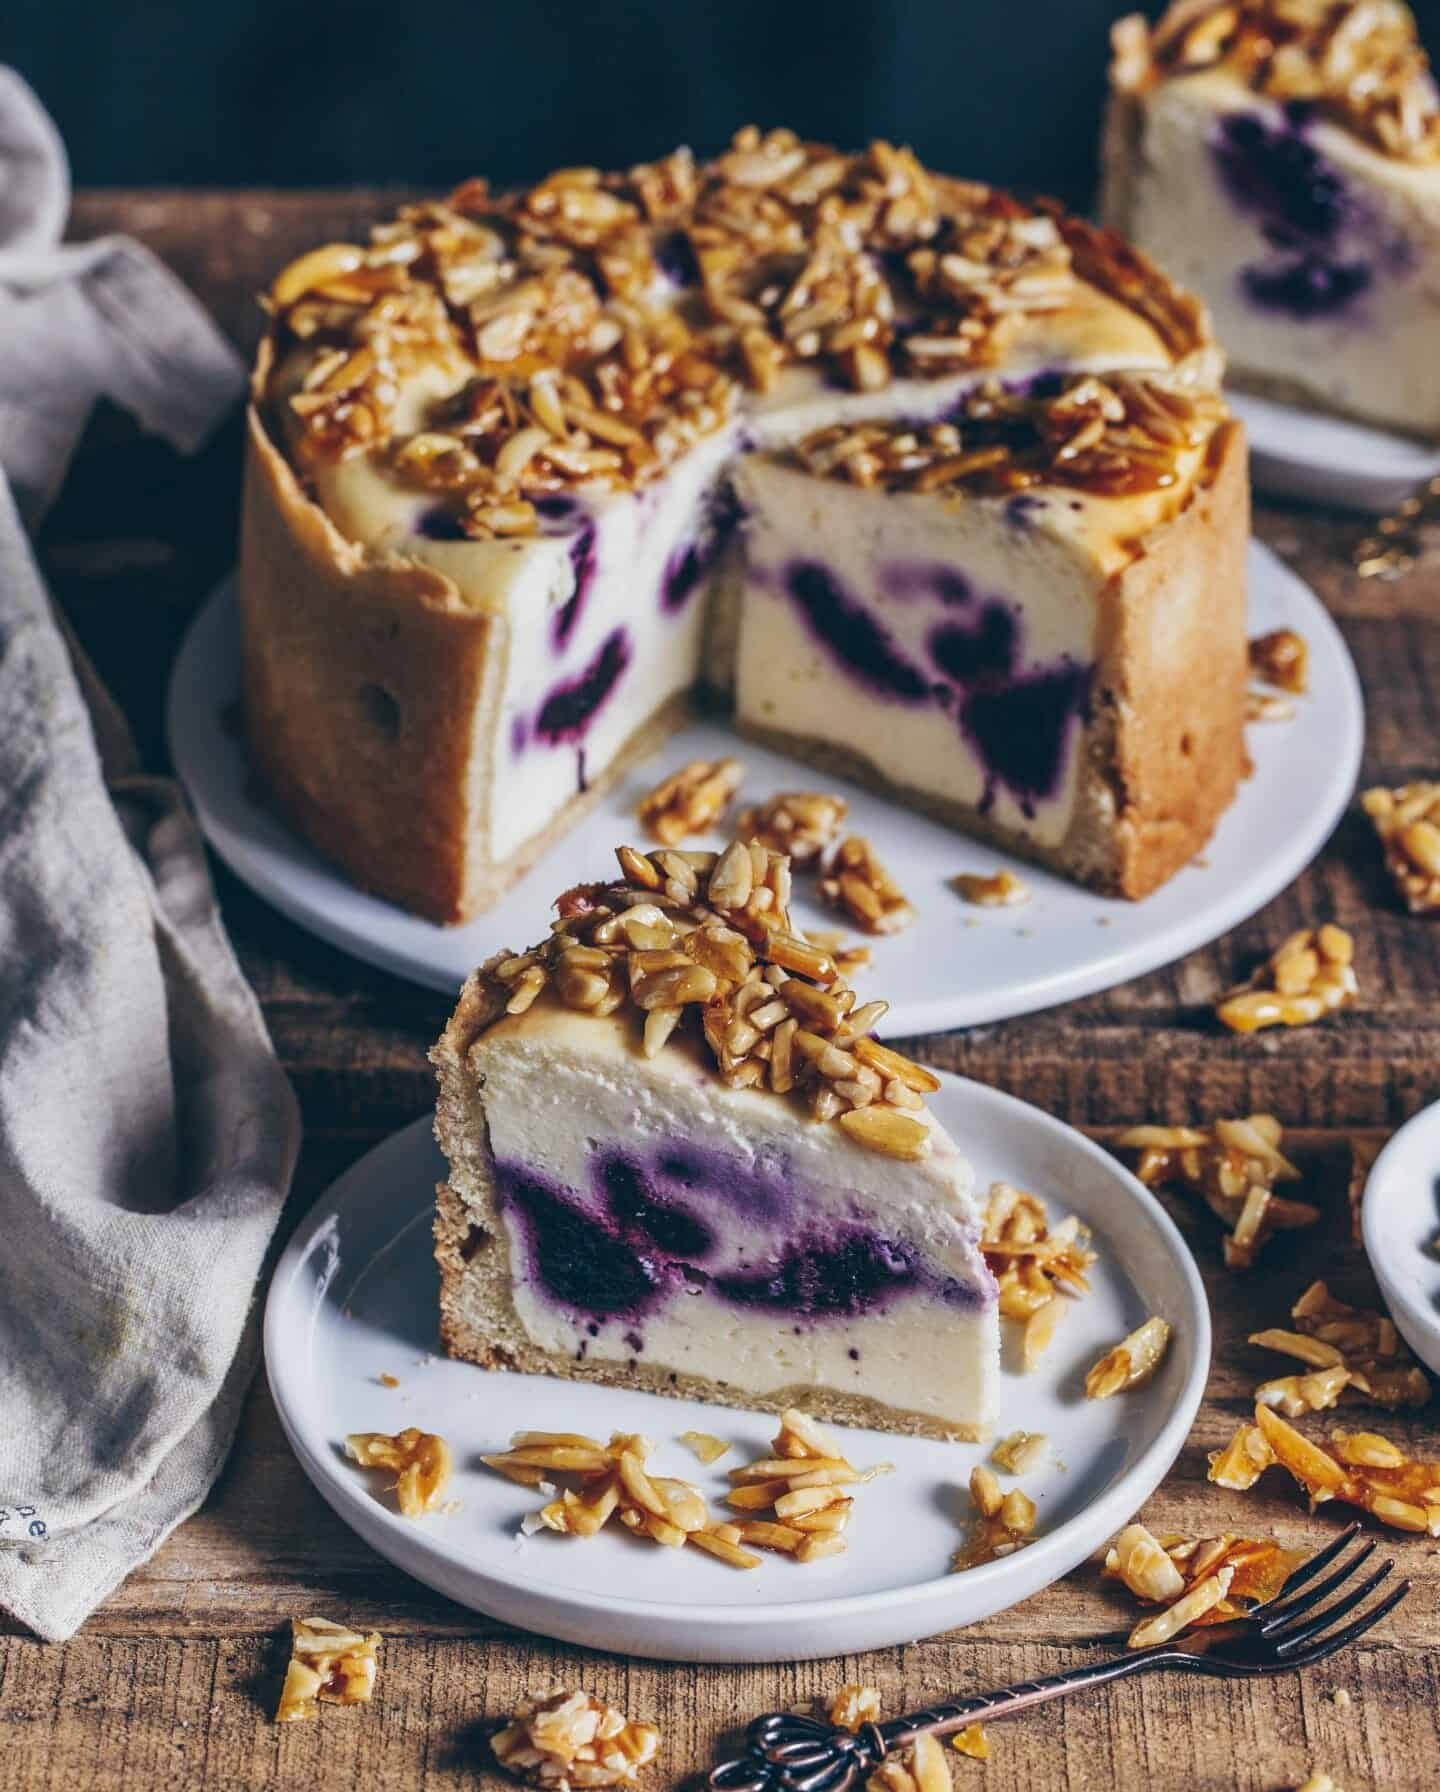 vegan blueberry cheesecake with almond topping